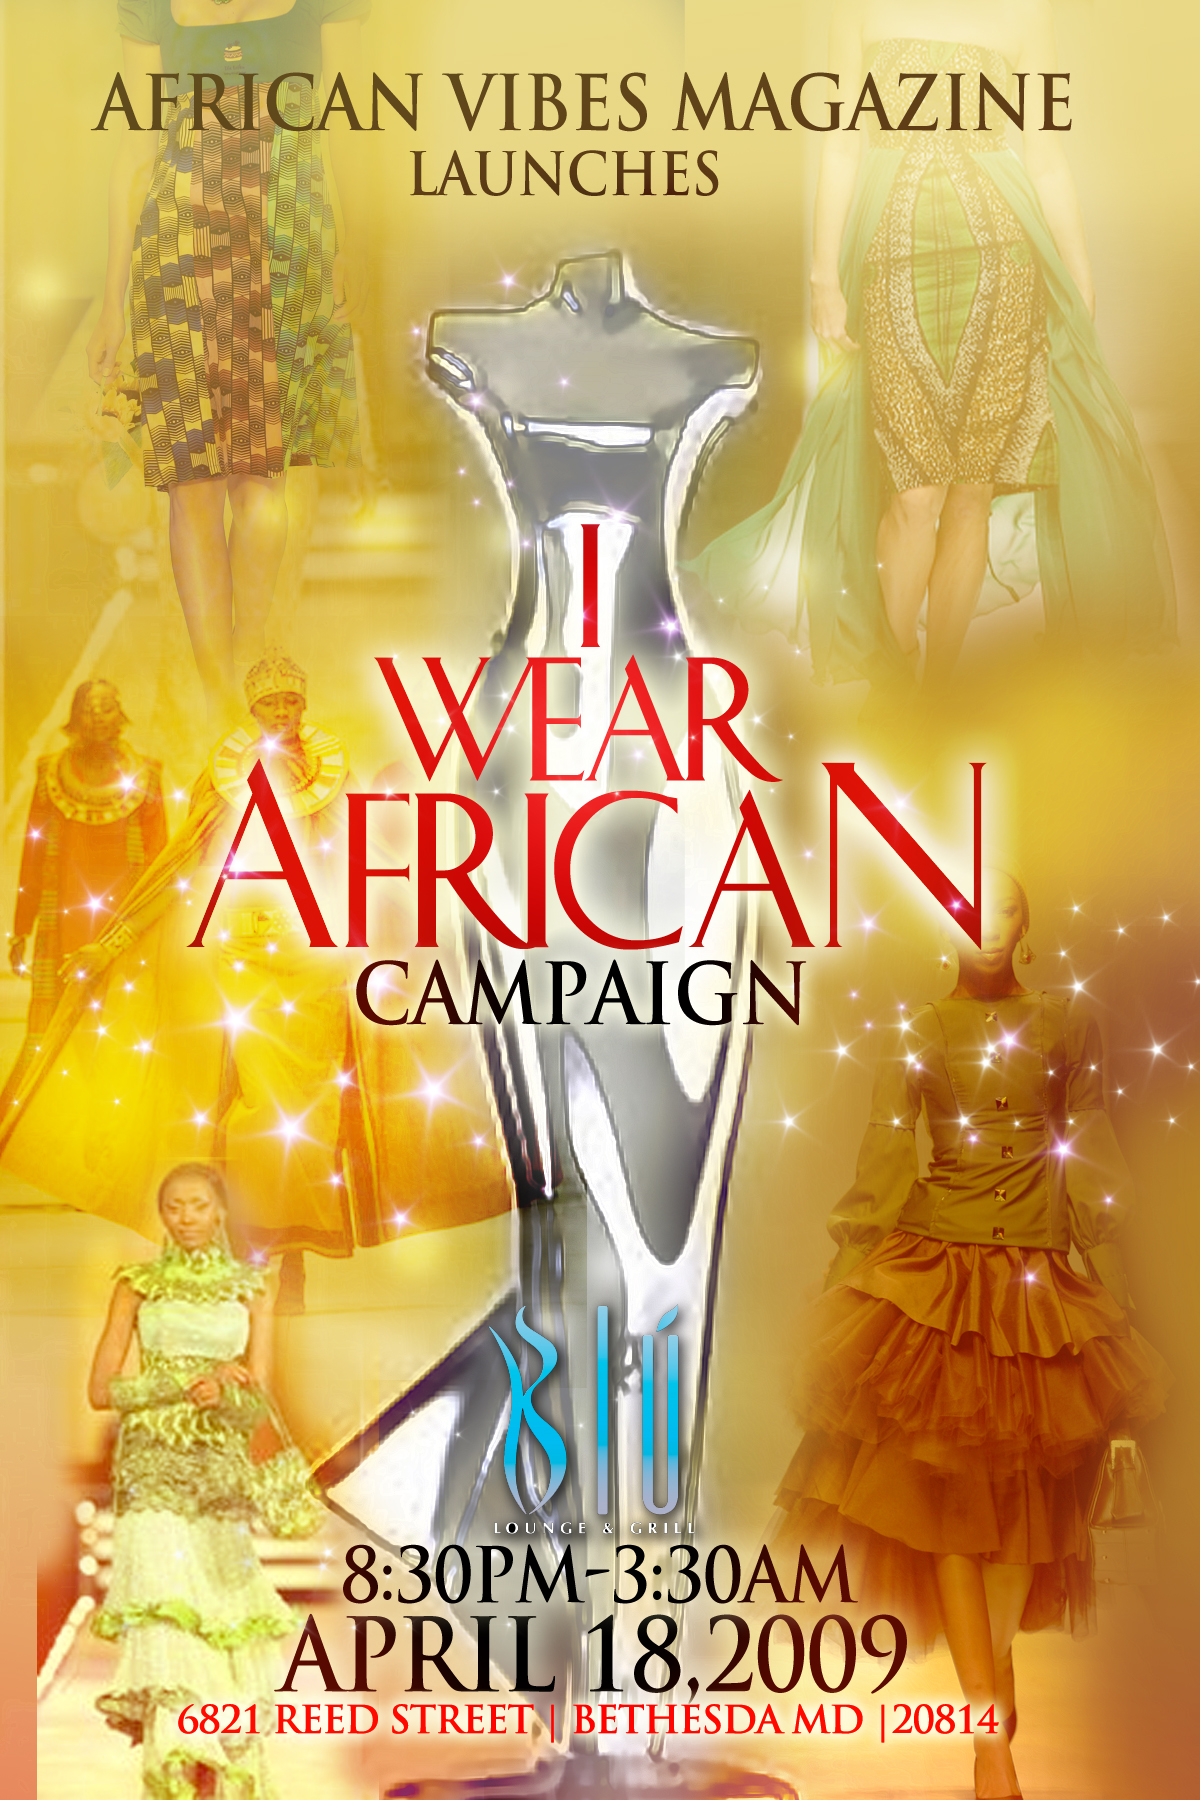 I Wear African Campaign - Photo African Vibes